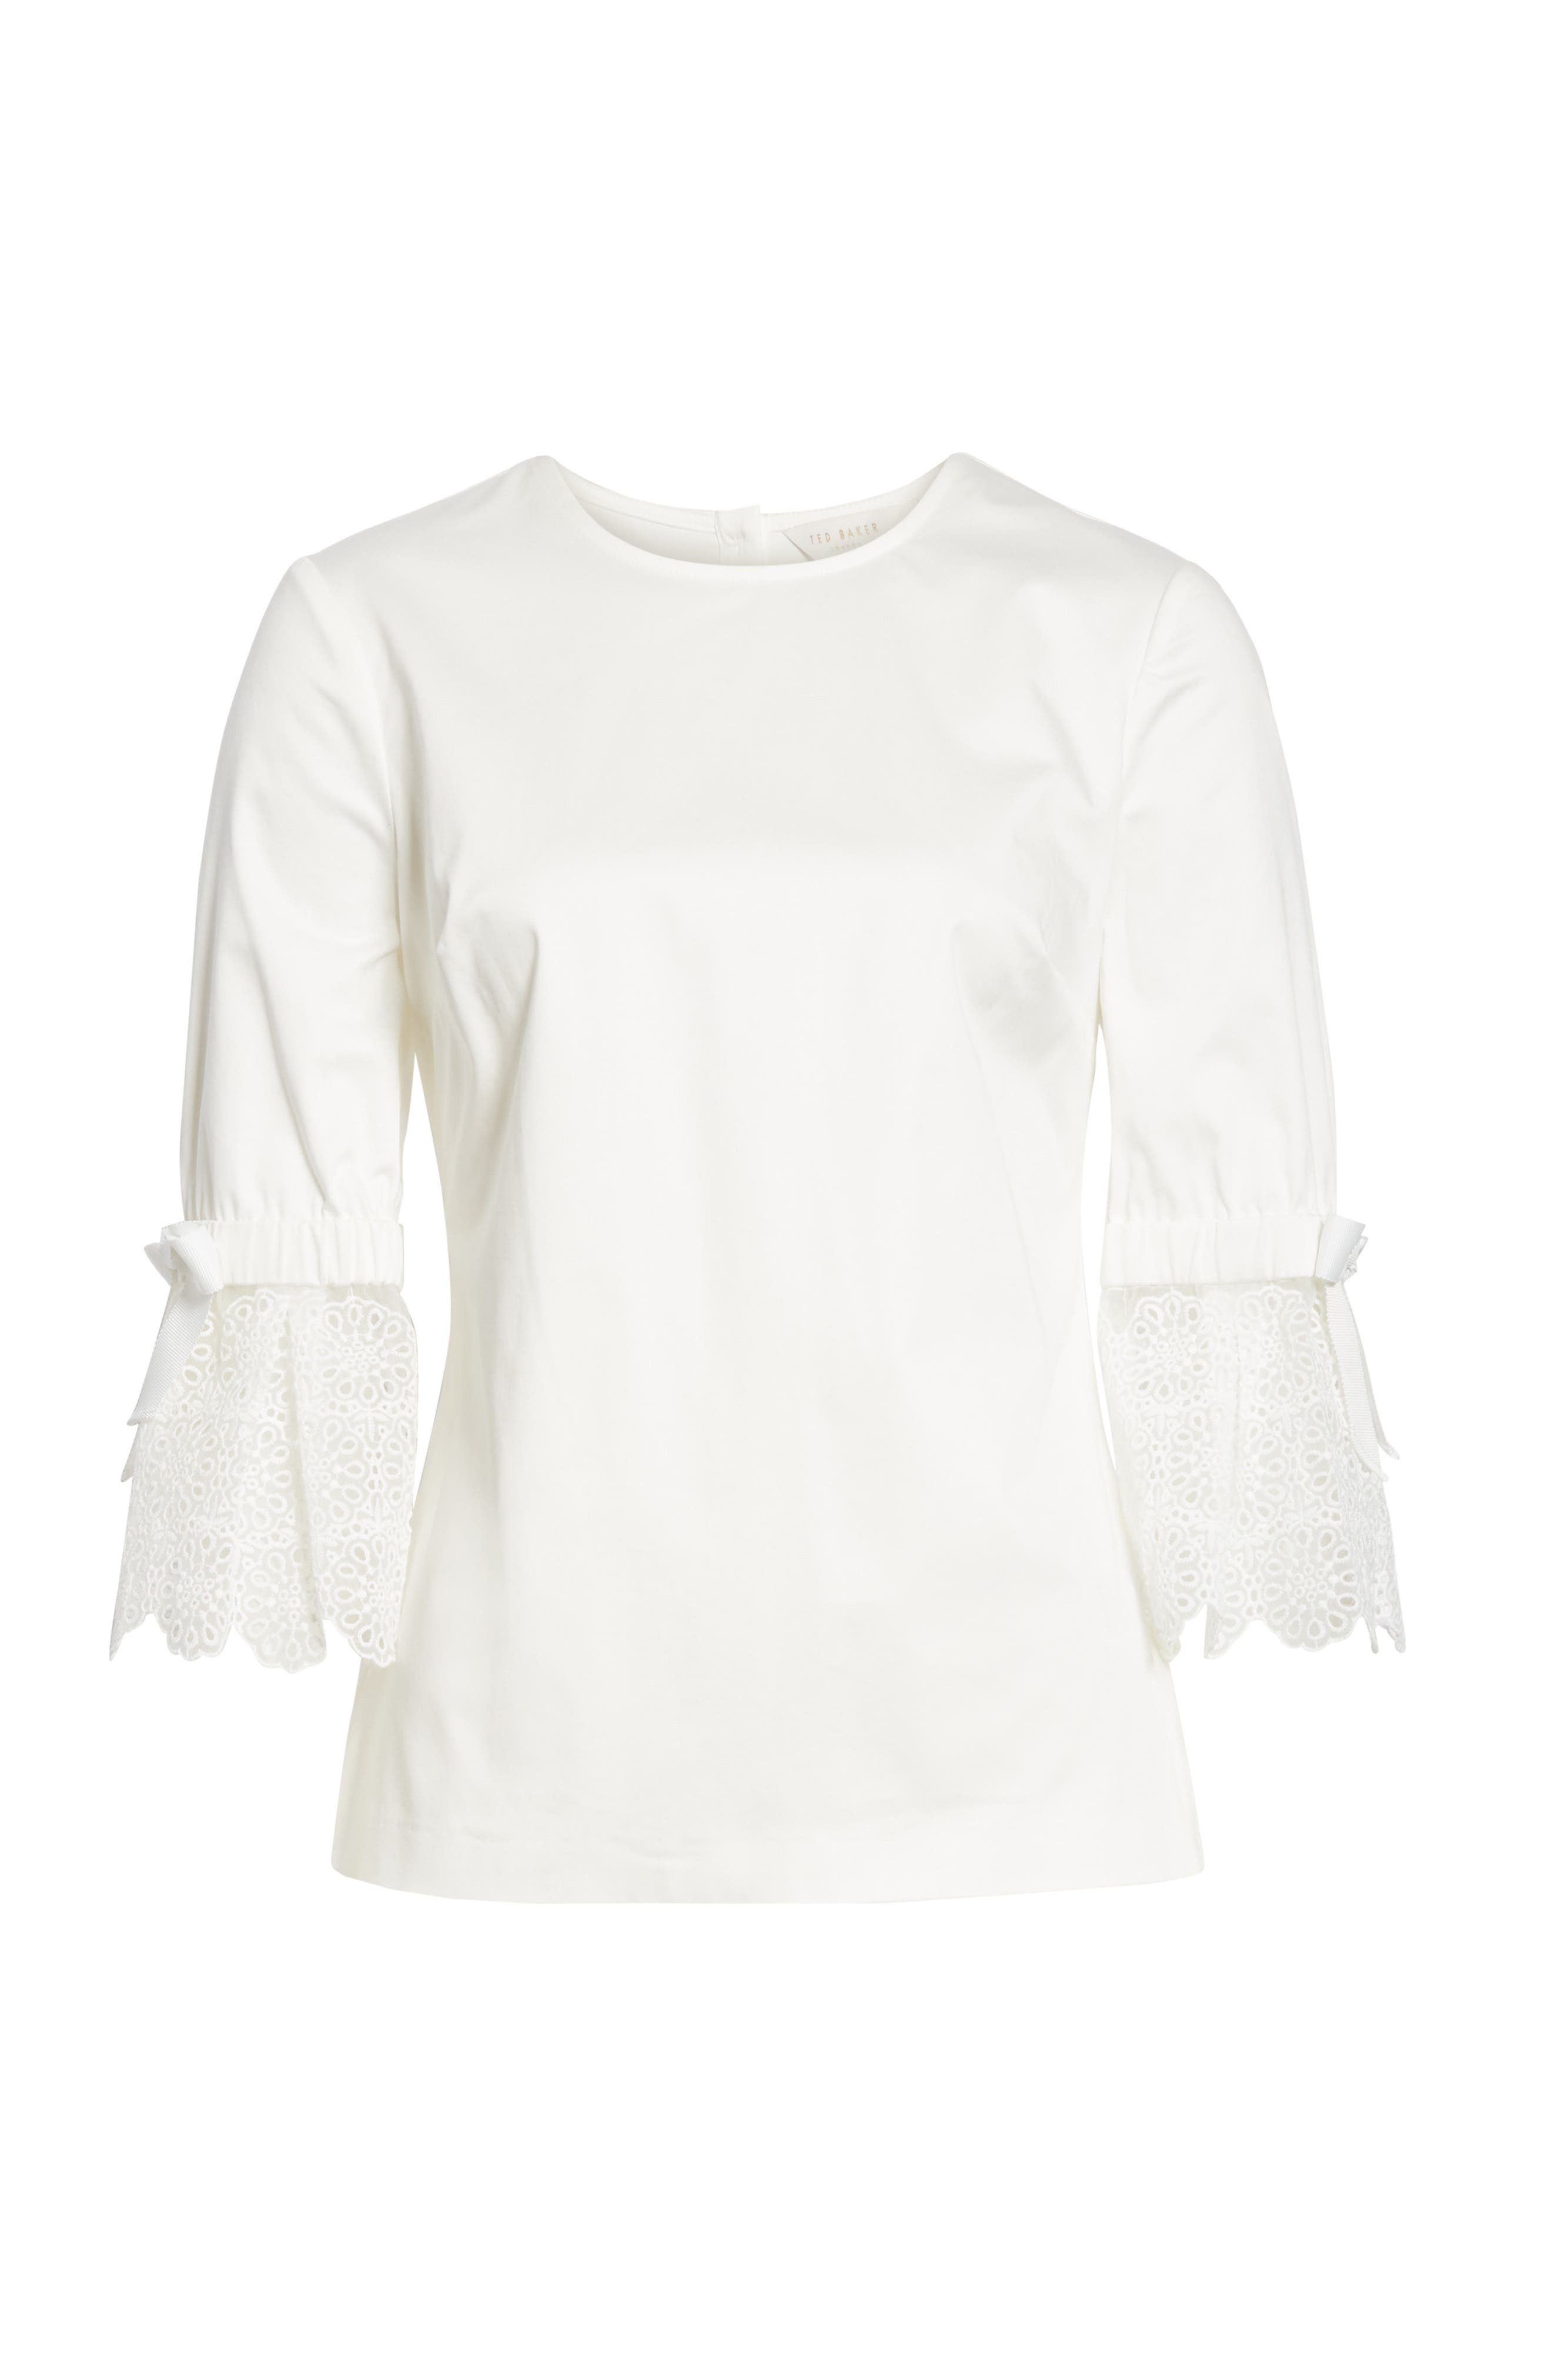 Broderie Lace Bow Sleeve Top,                             Alternate thumbnail 6, color,                             White